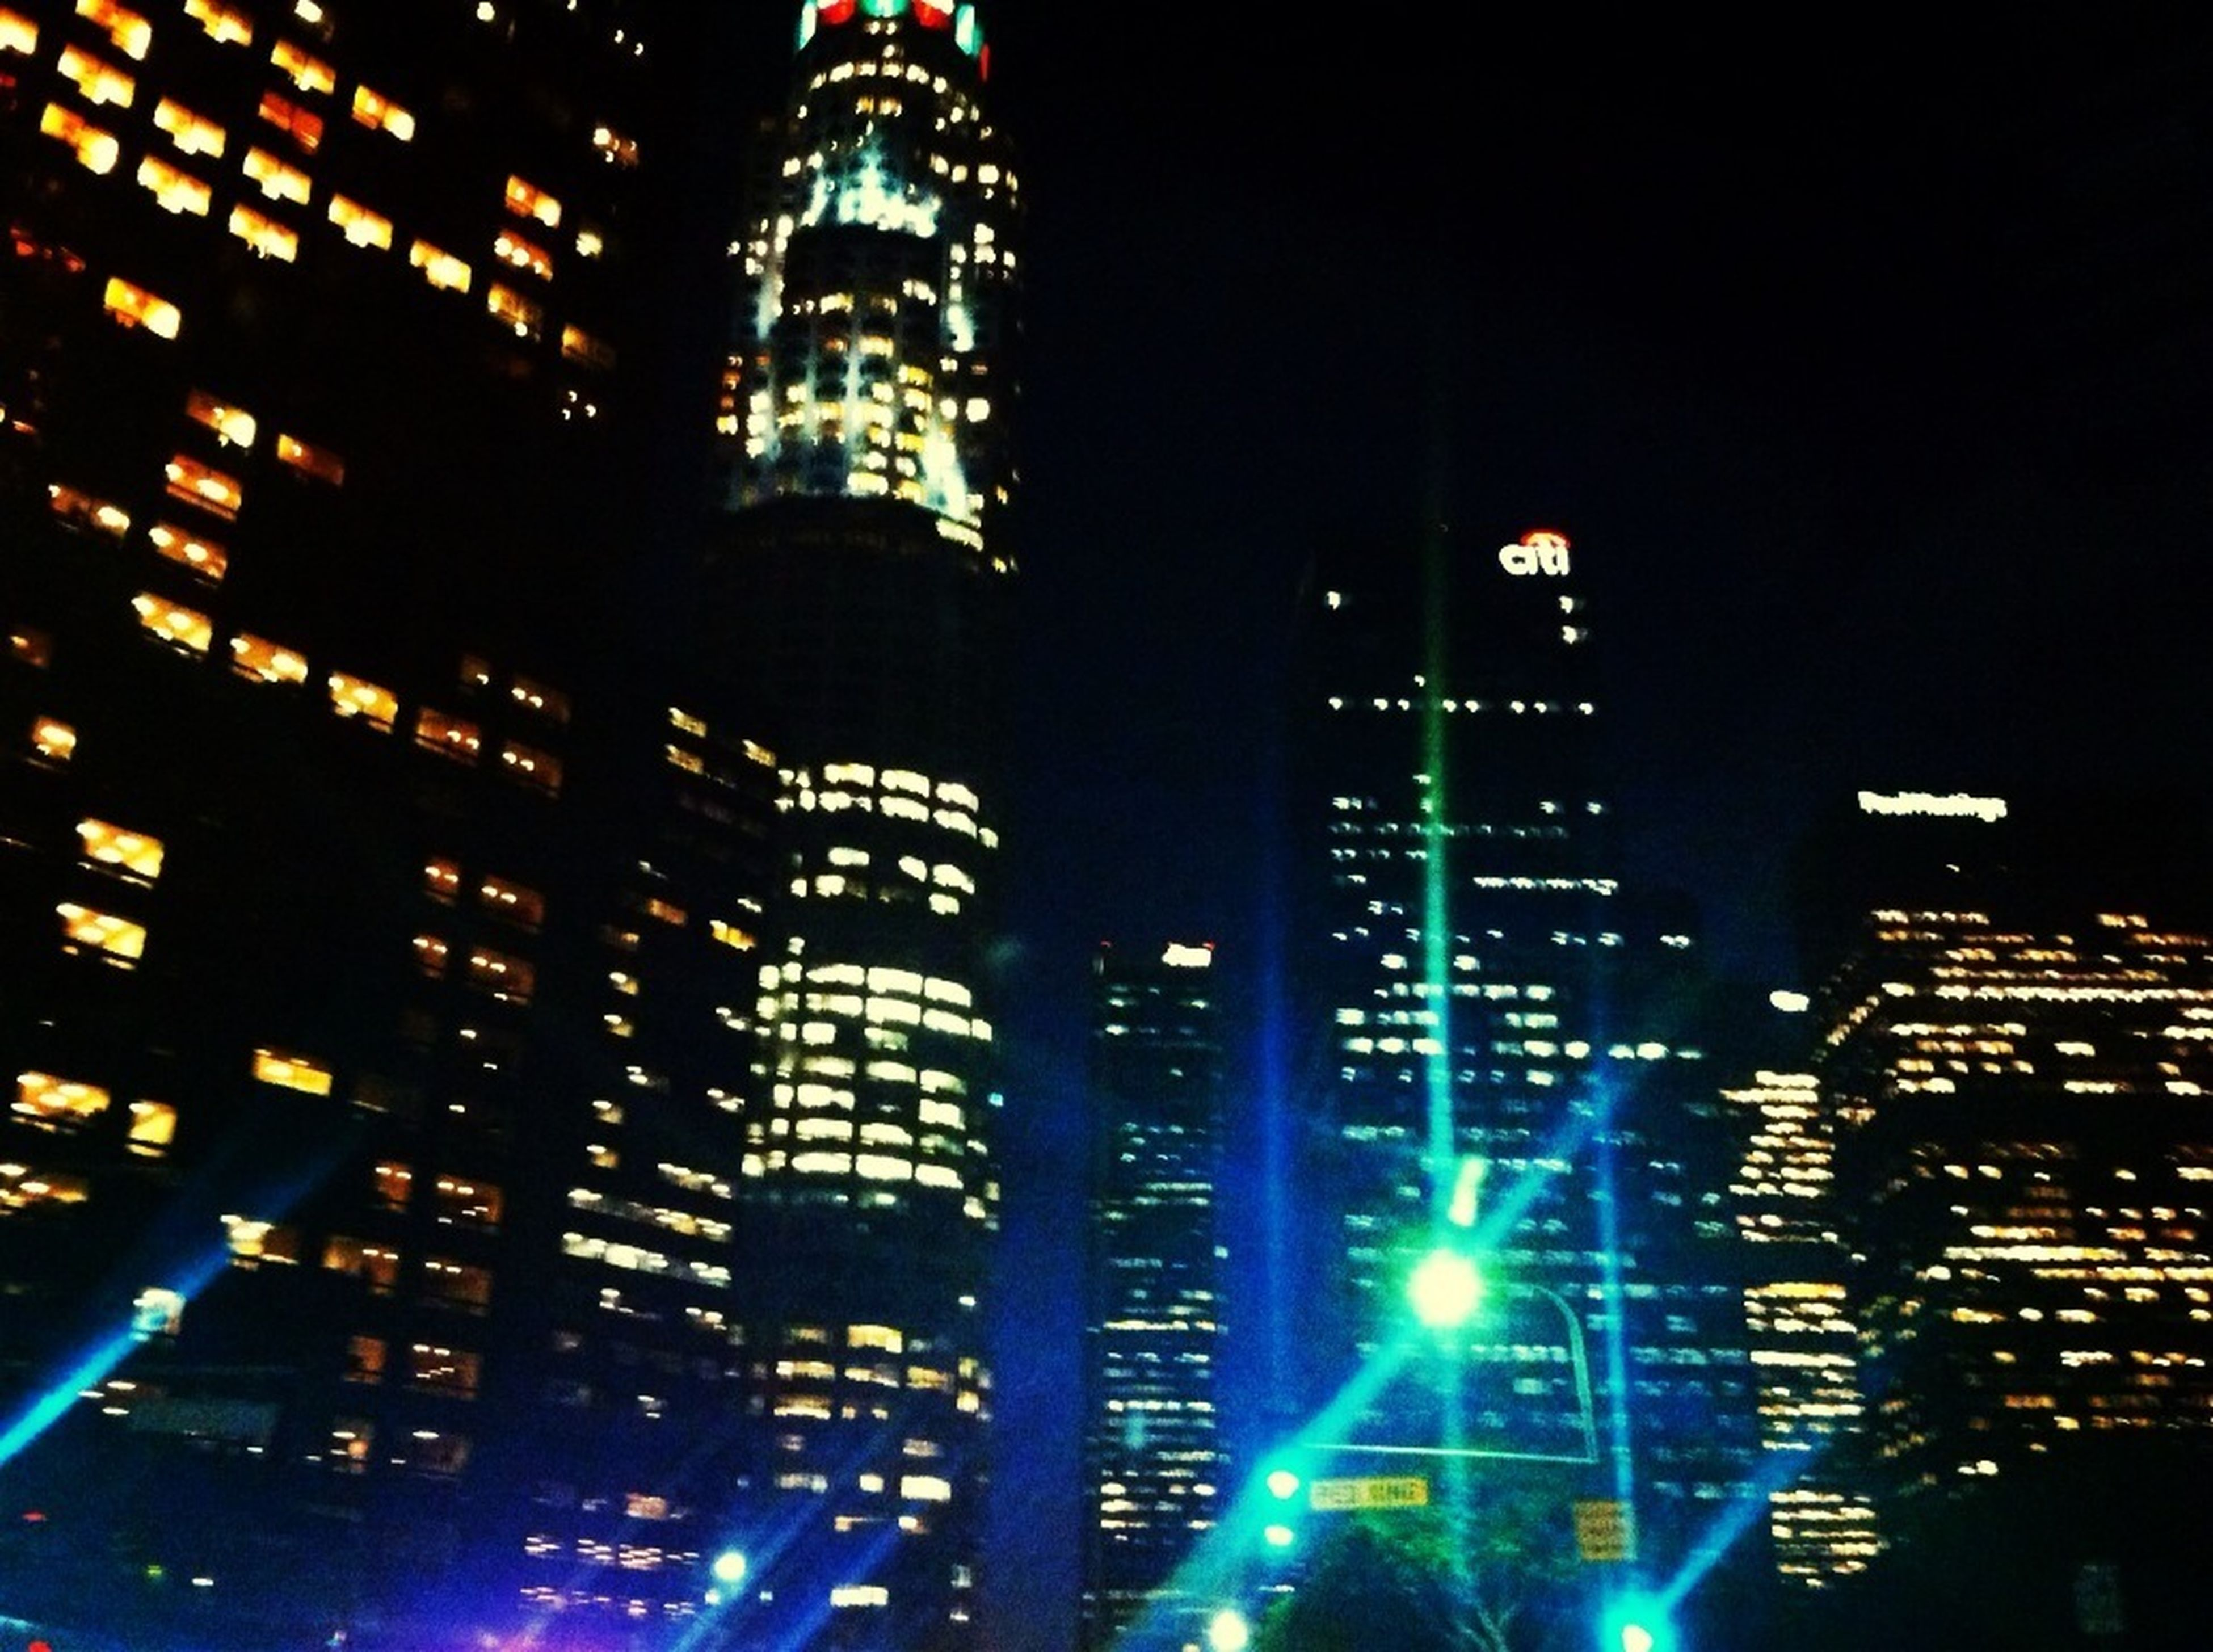 illuminated, night, building exterior, architecture, city, built structure, skyscraper, tall - high, tower, cityscape, modern, capital cities, office building, travel destinations, famous place, financial district, city life, international landmark, light - natural phenomenon, sky